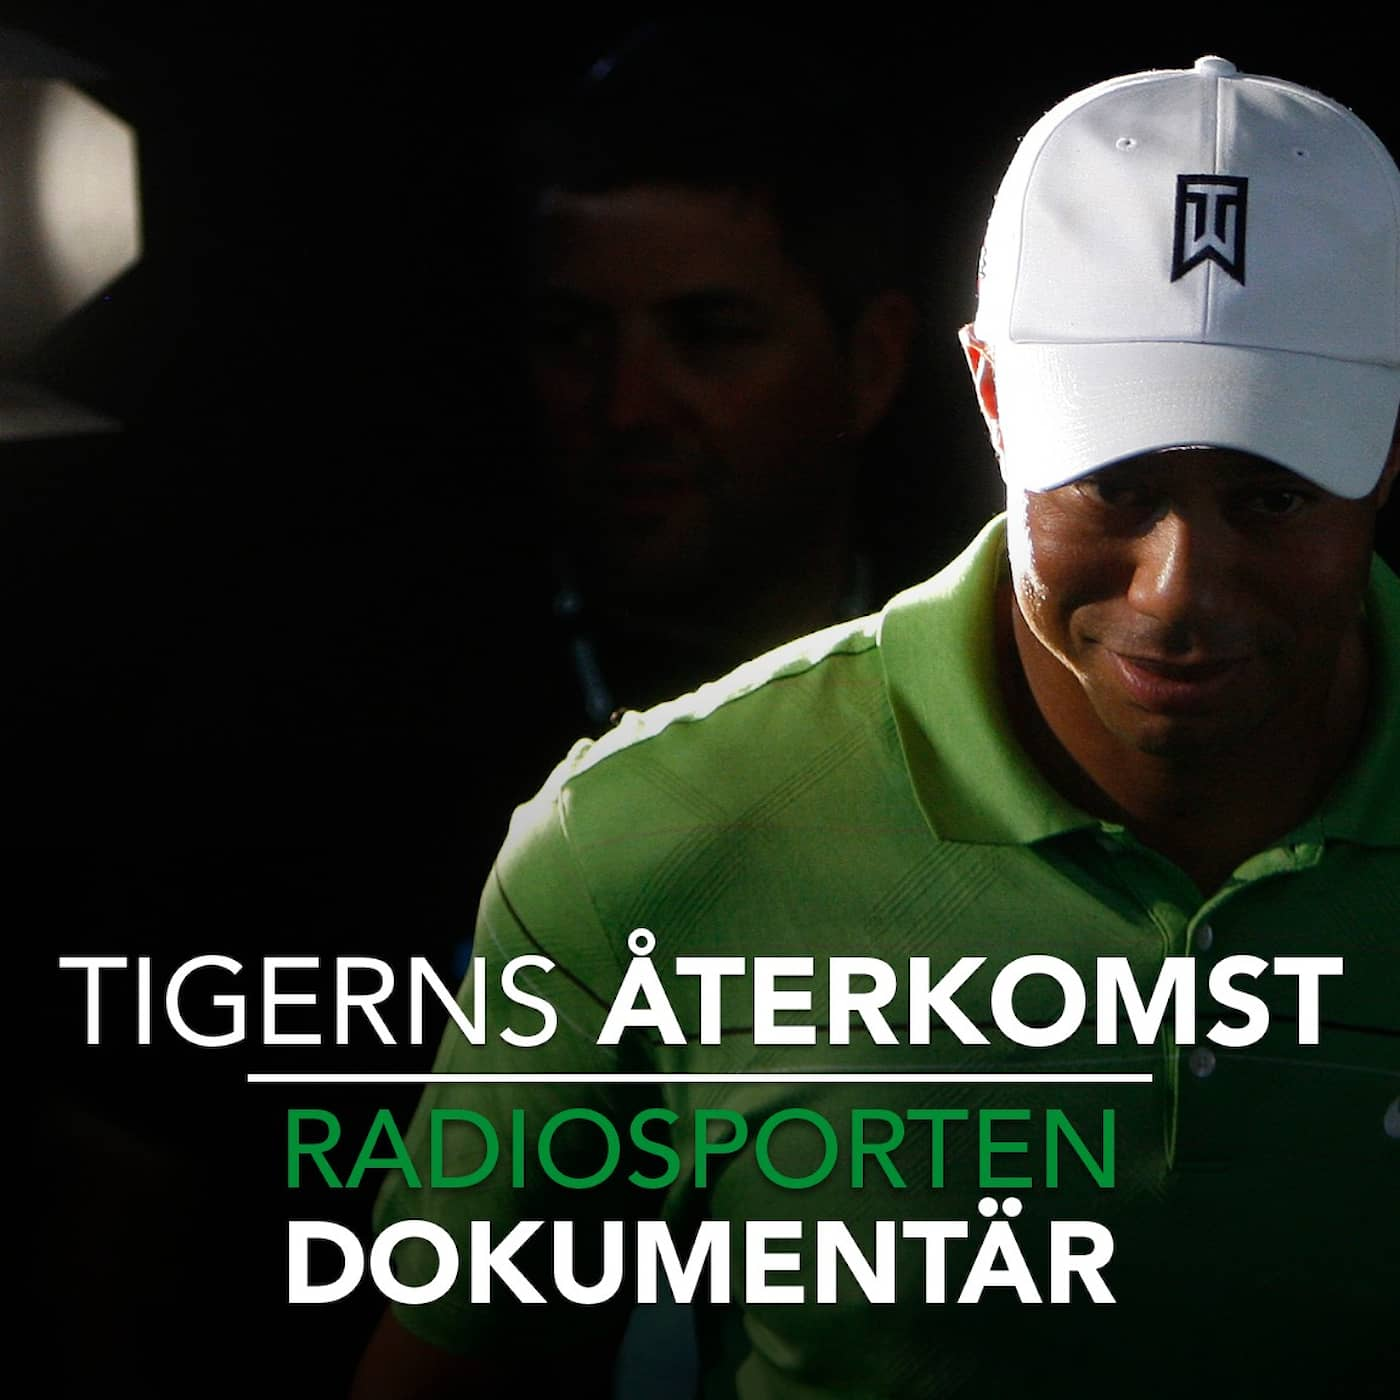 Tigerns återkomst